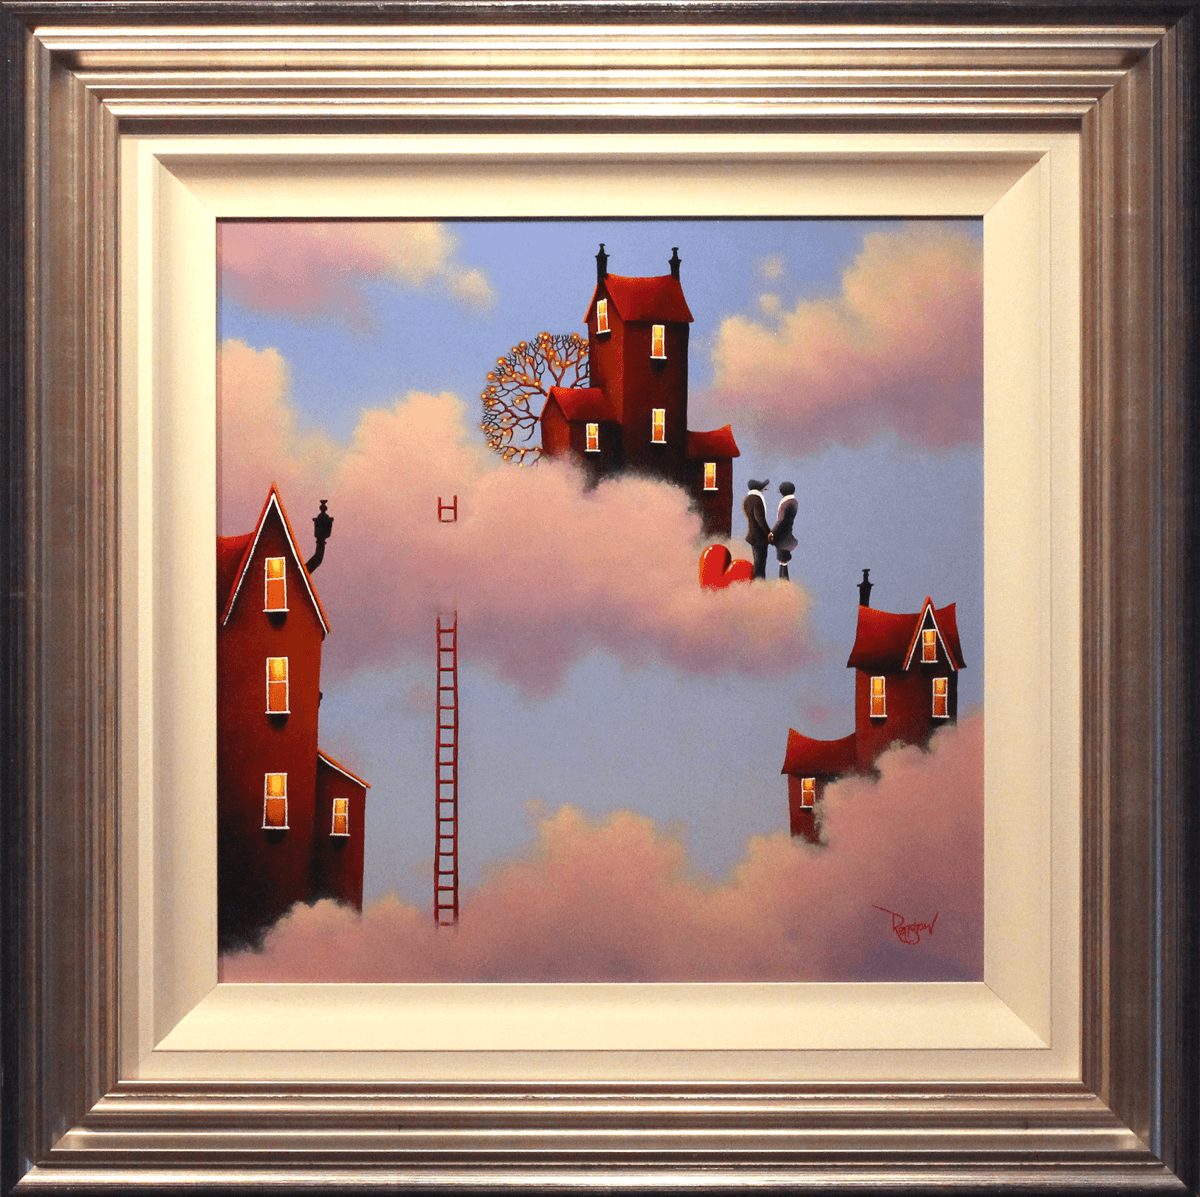 Floating on Cloud 9 - SOLD David Renshaw